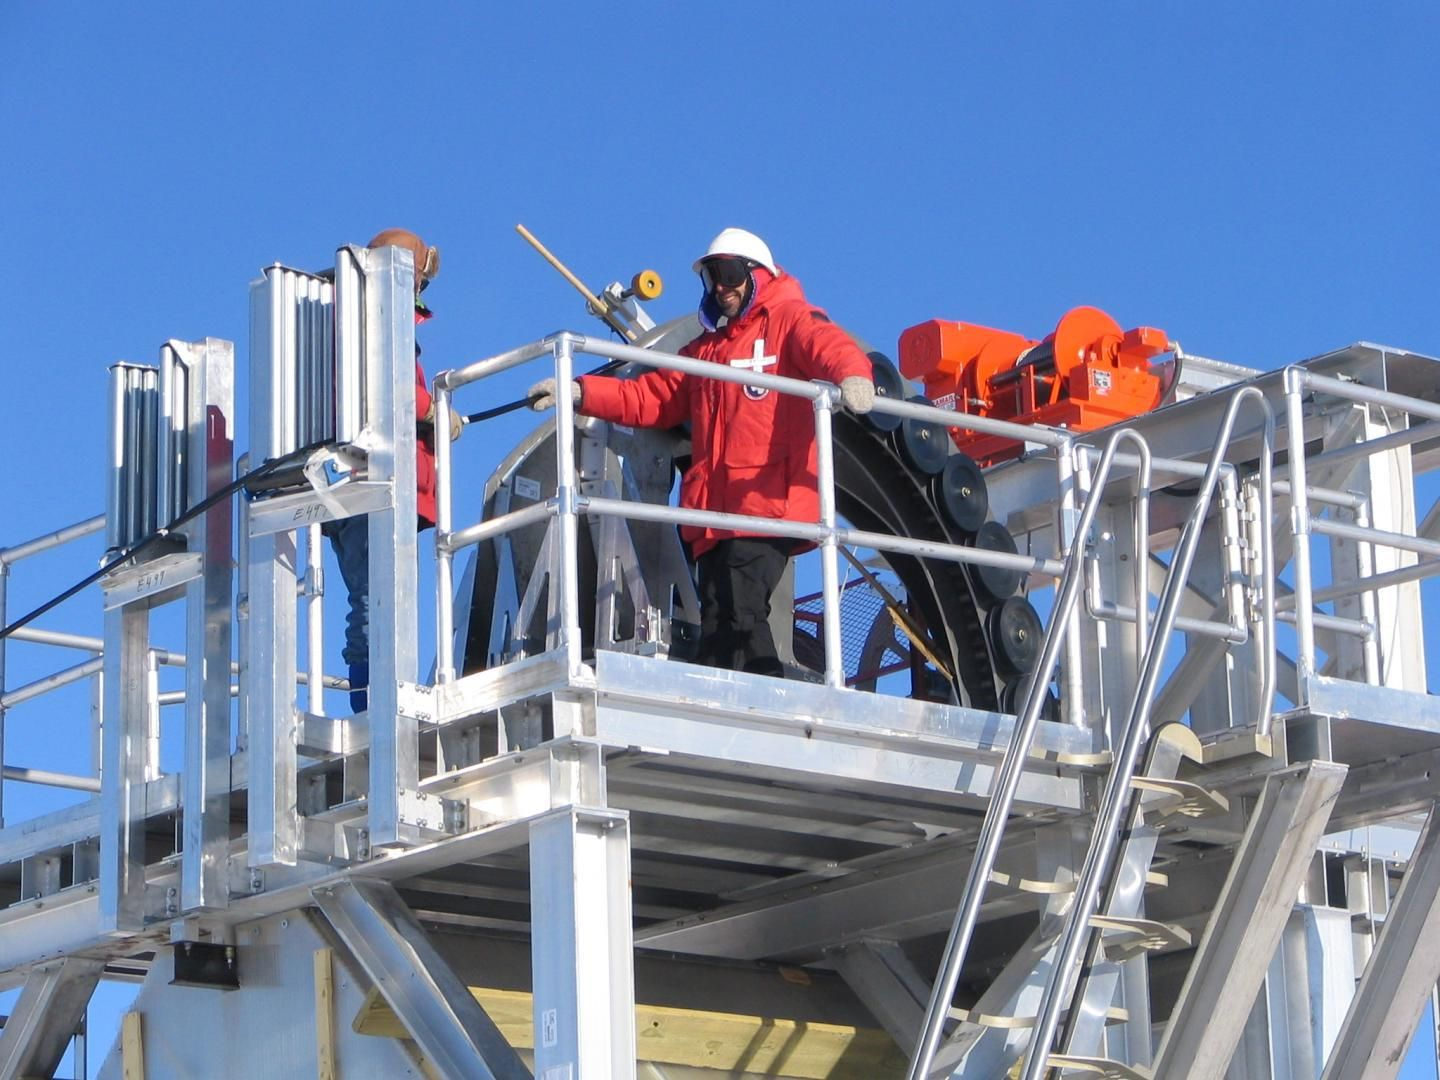 South pole shows early success at neutrino hunting with